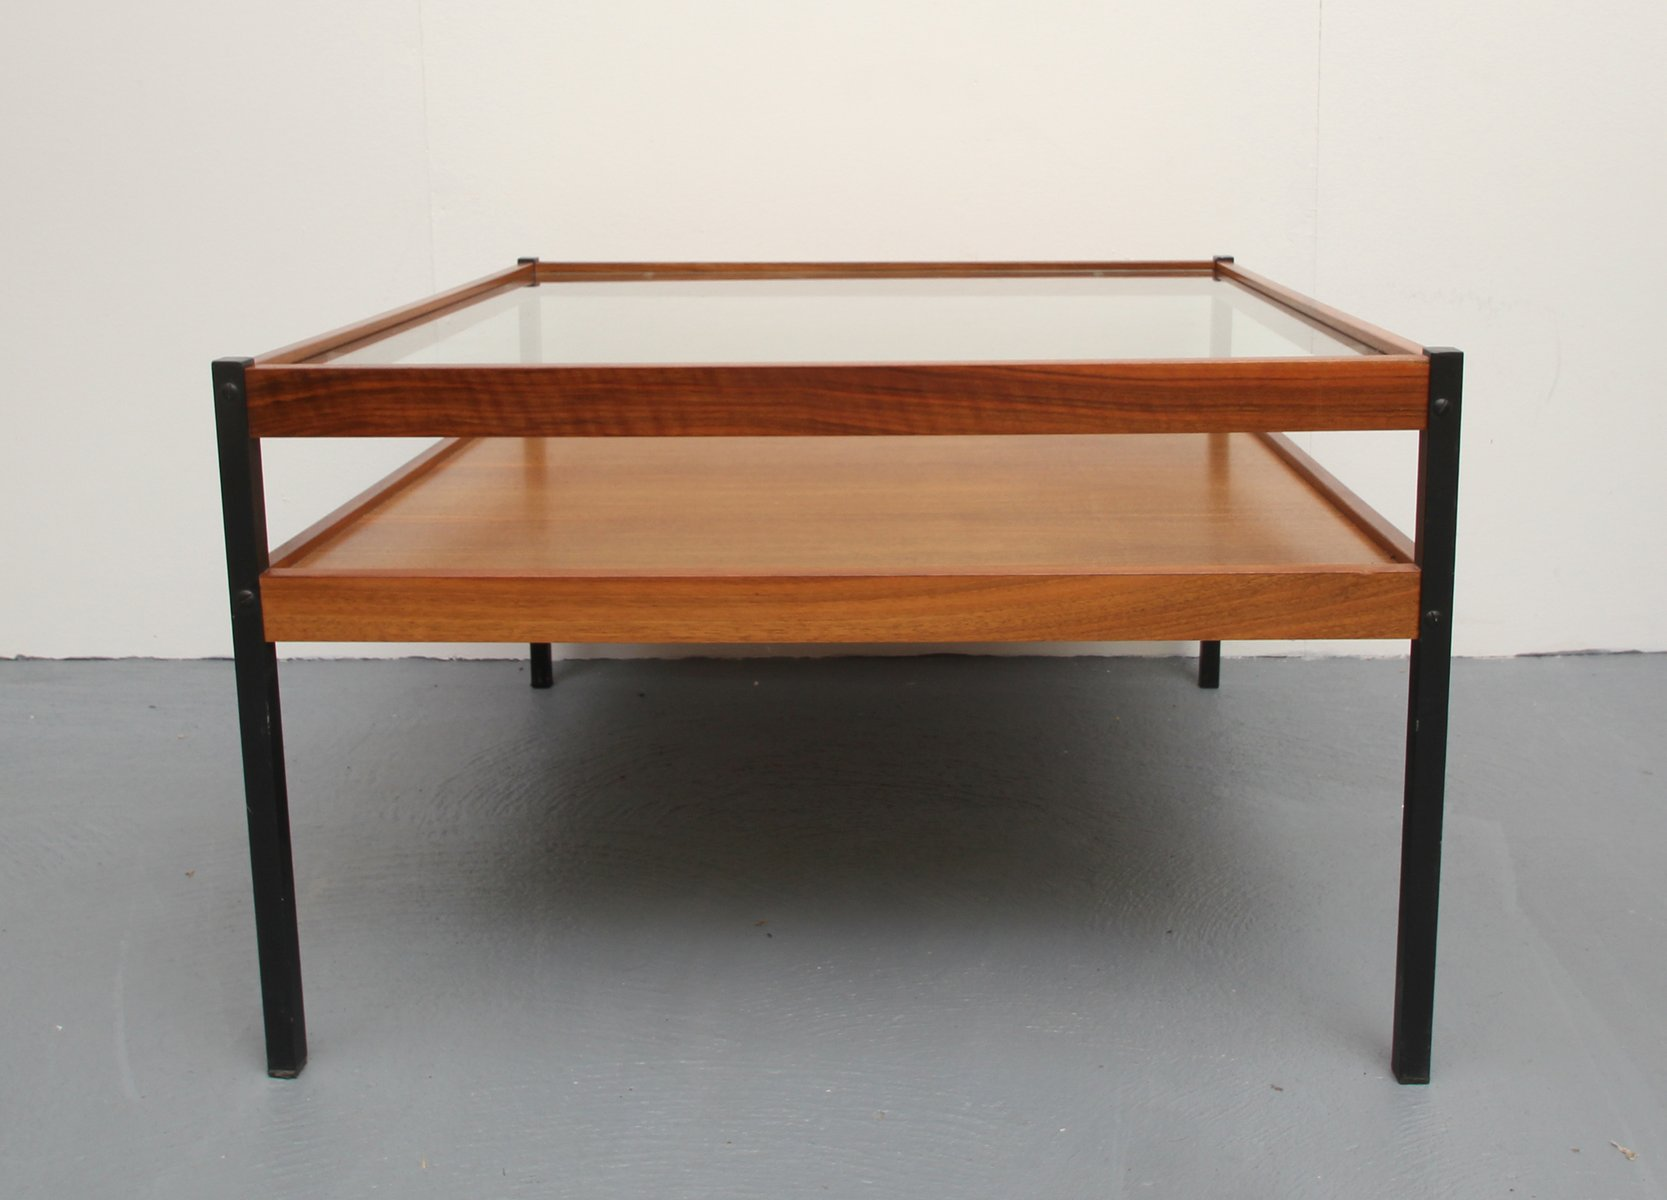 walnut veneer  glass coffee table s for sale at pamono - walnut veneer  glass coffee table s   price per piece